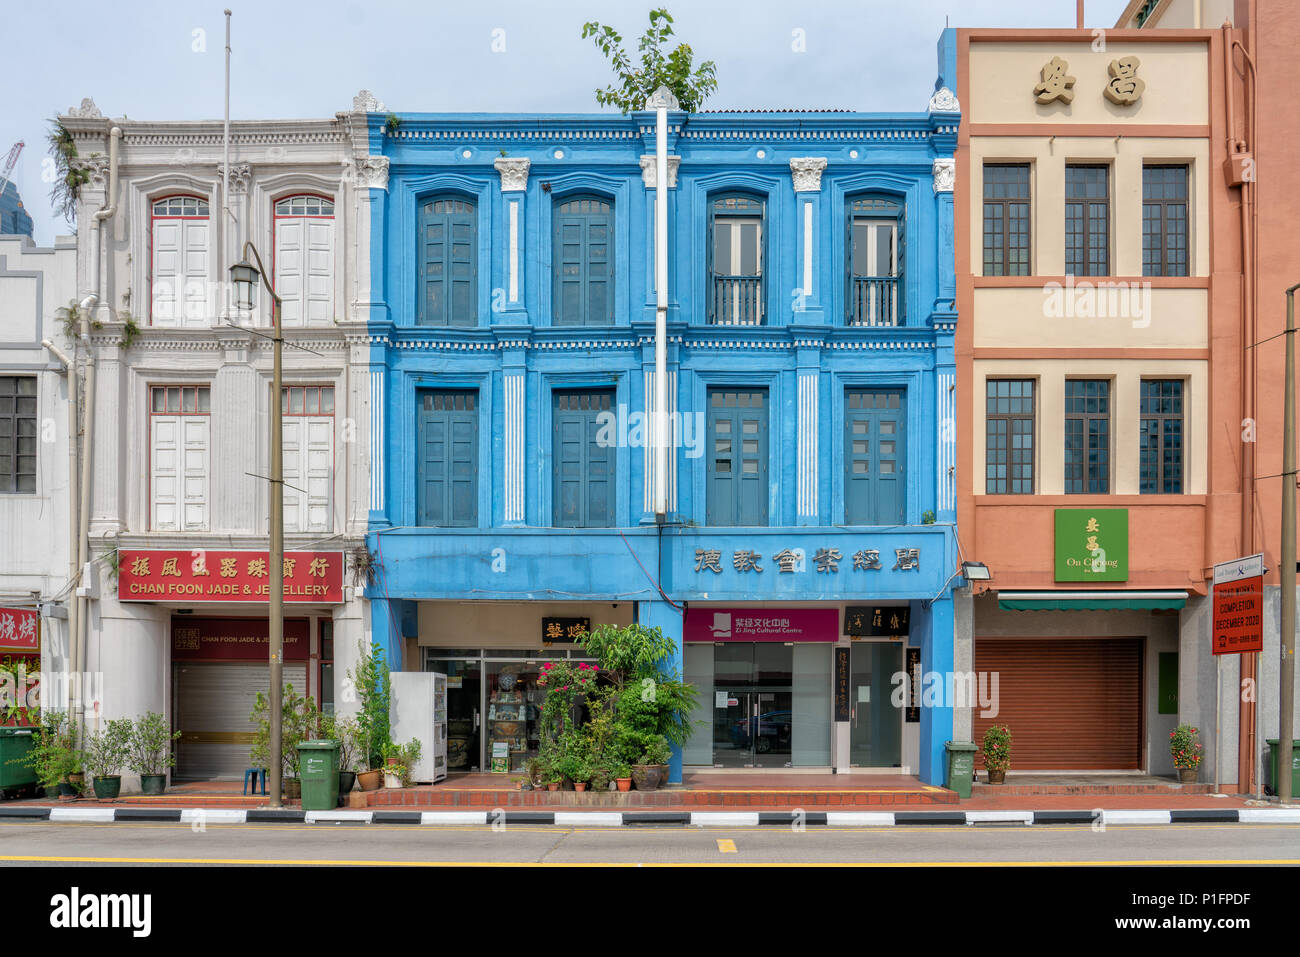 Singapore - June 10, 2018: Colorful Shophouses in Chinatown with closed shoppes - Stock Image